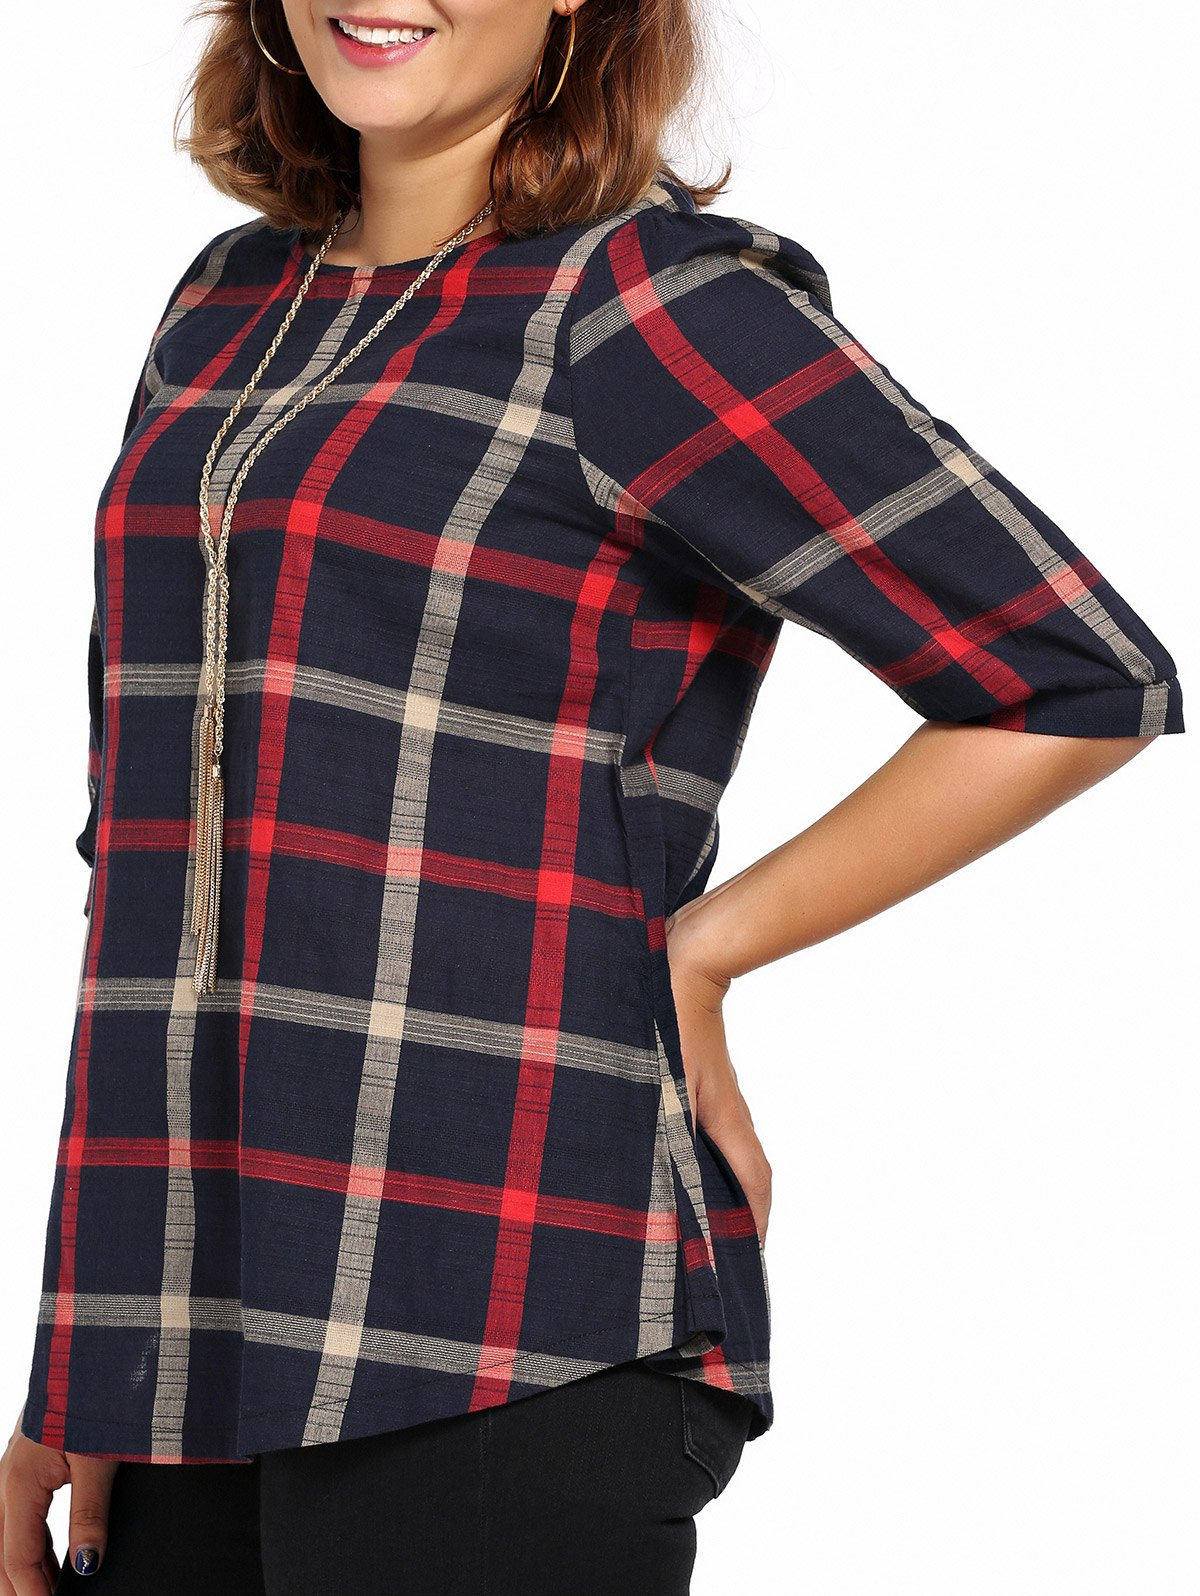 s 'Blouse Chic Plus Size High-Low Hem Plaid Imprimer Femmes - multicolorcolore 5XL